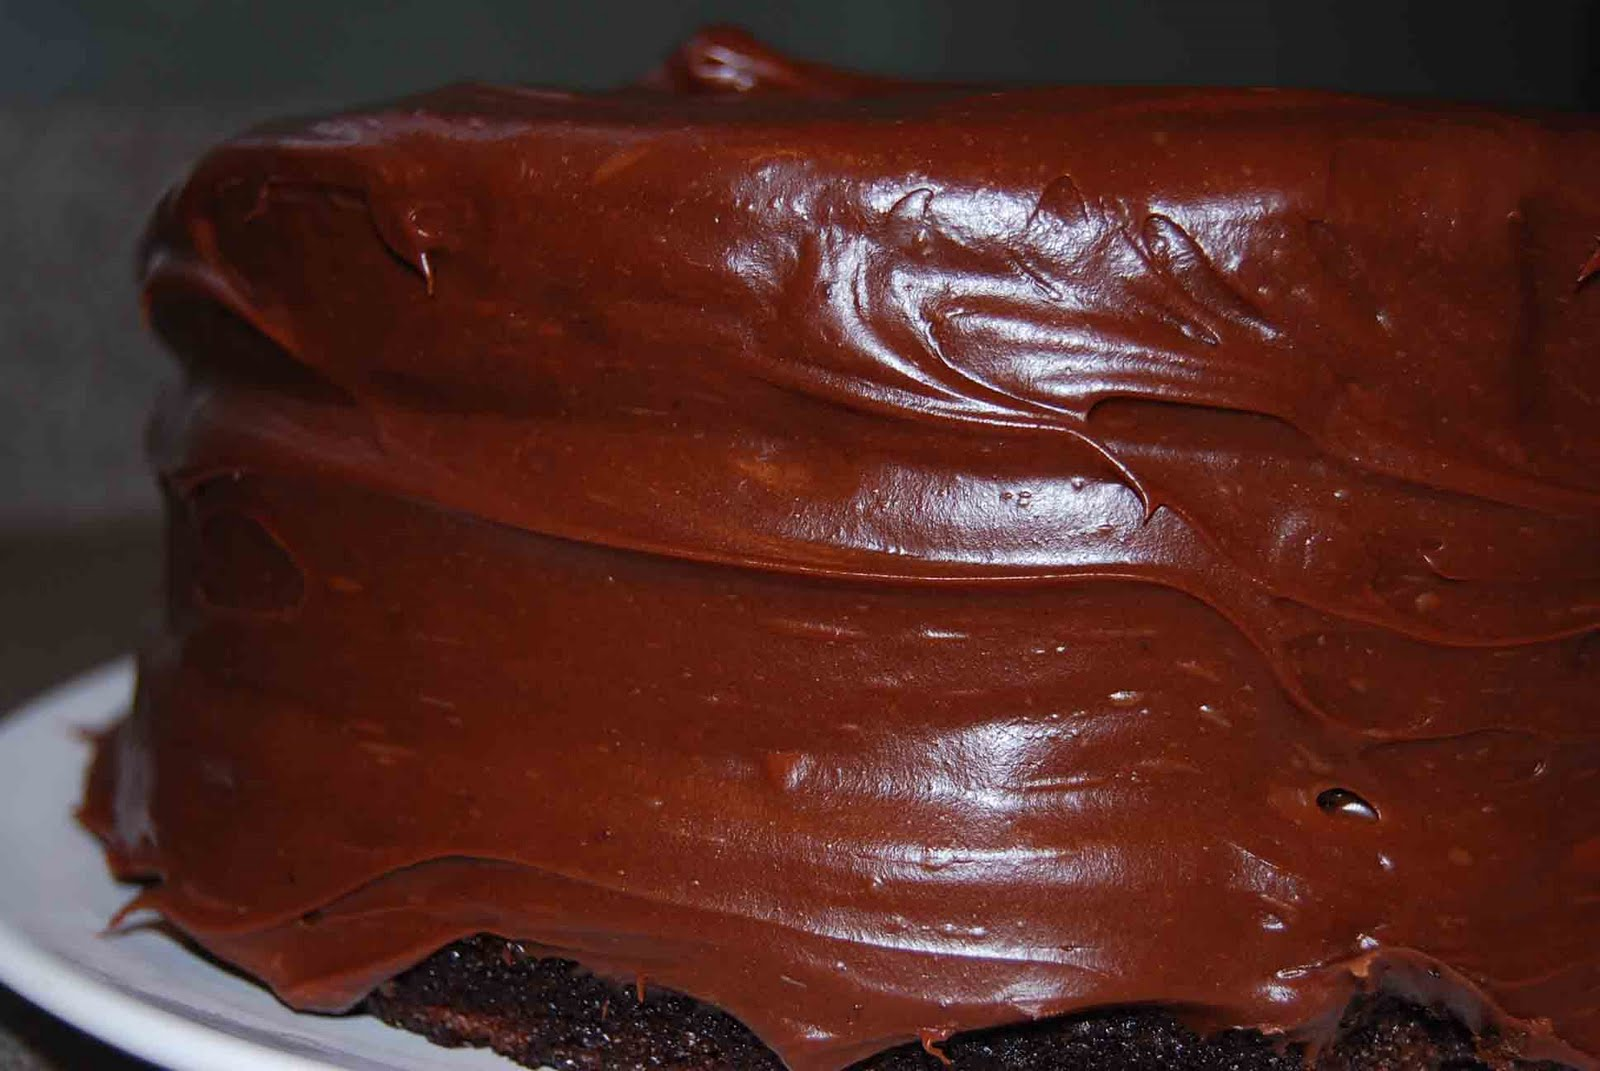 Deli Syosa: Basic Chocolate Cake